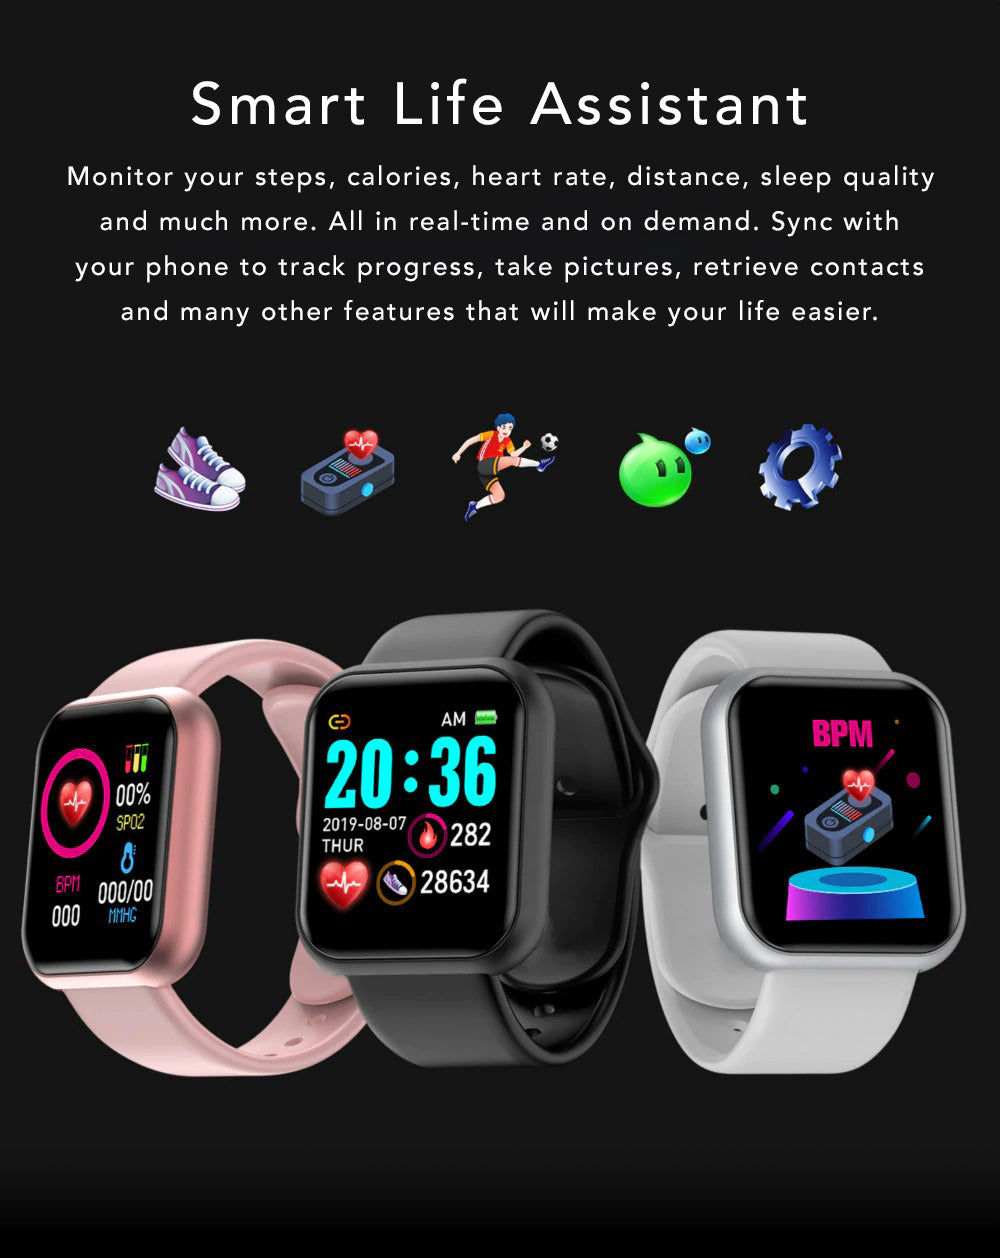 iSport Bluetooth Smart Watch SMS HD Touch Screen Sports Exercise Track Lifestyle Smart Life Assistant Monitor Calories Heart Rate Sleep Quality